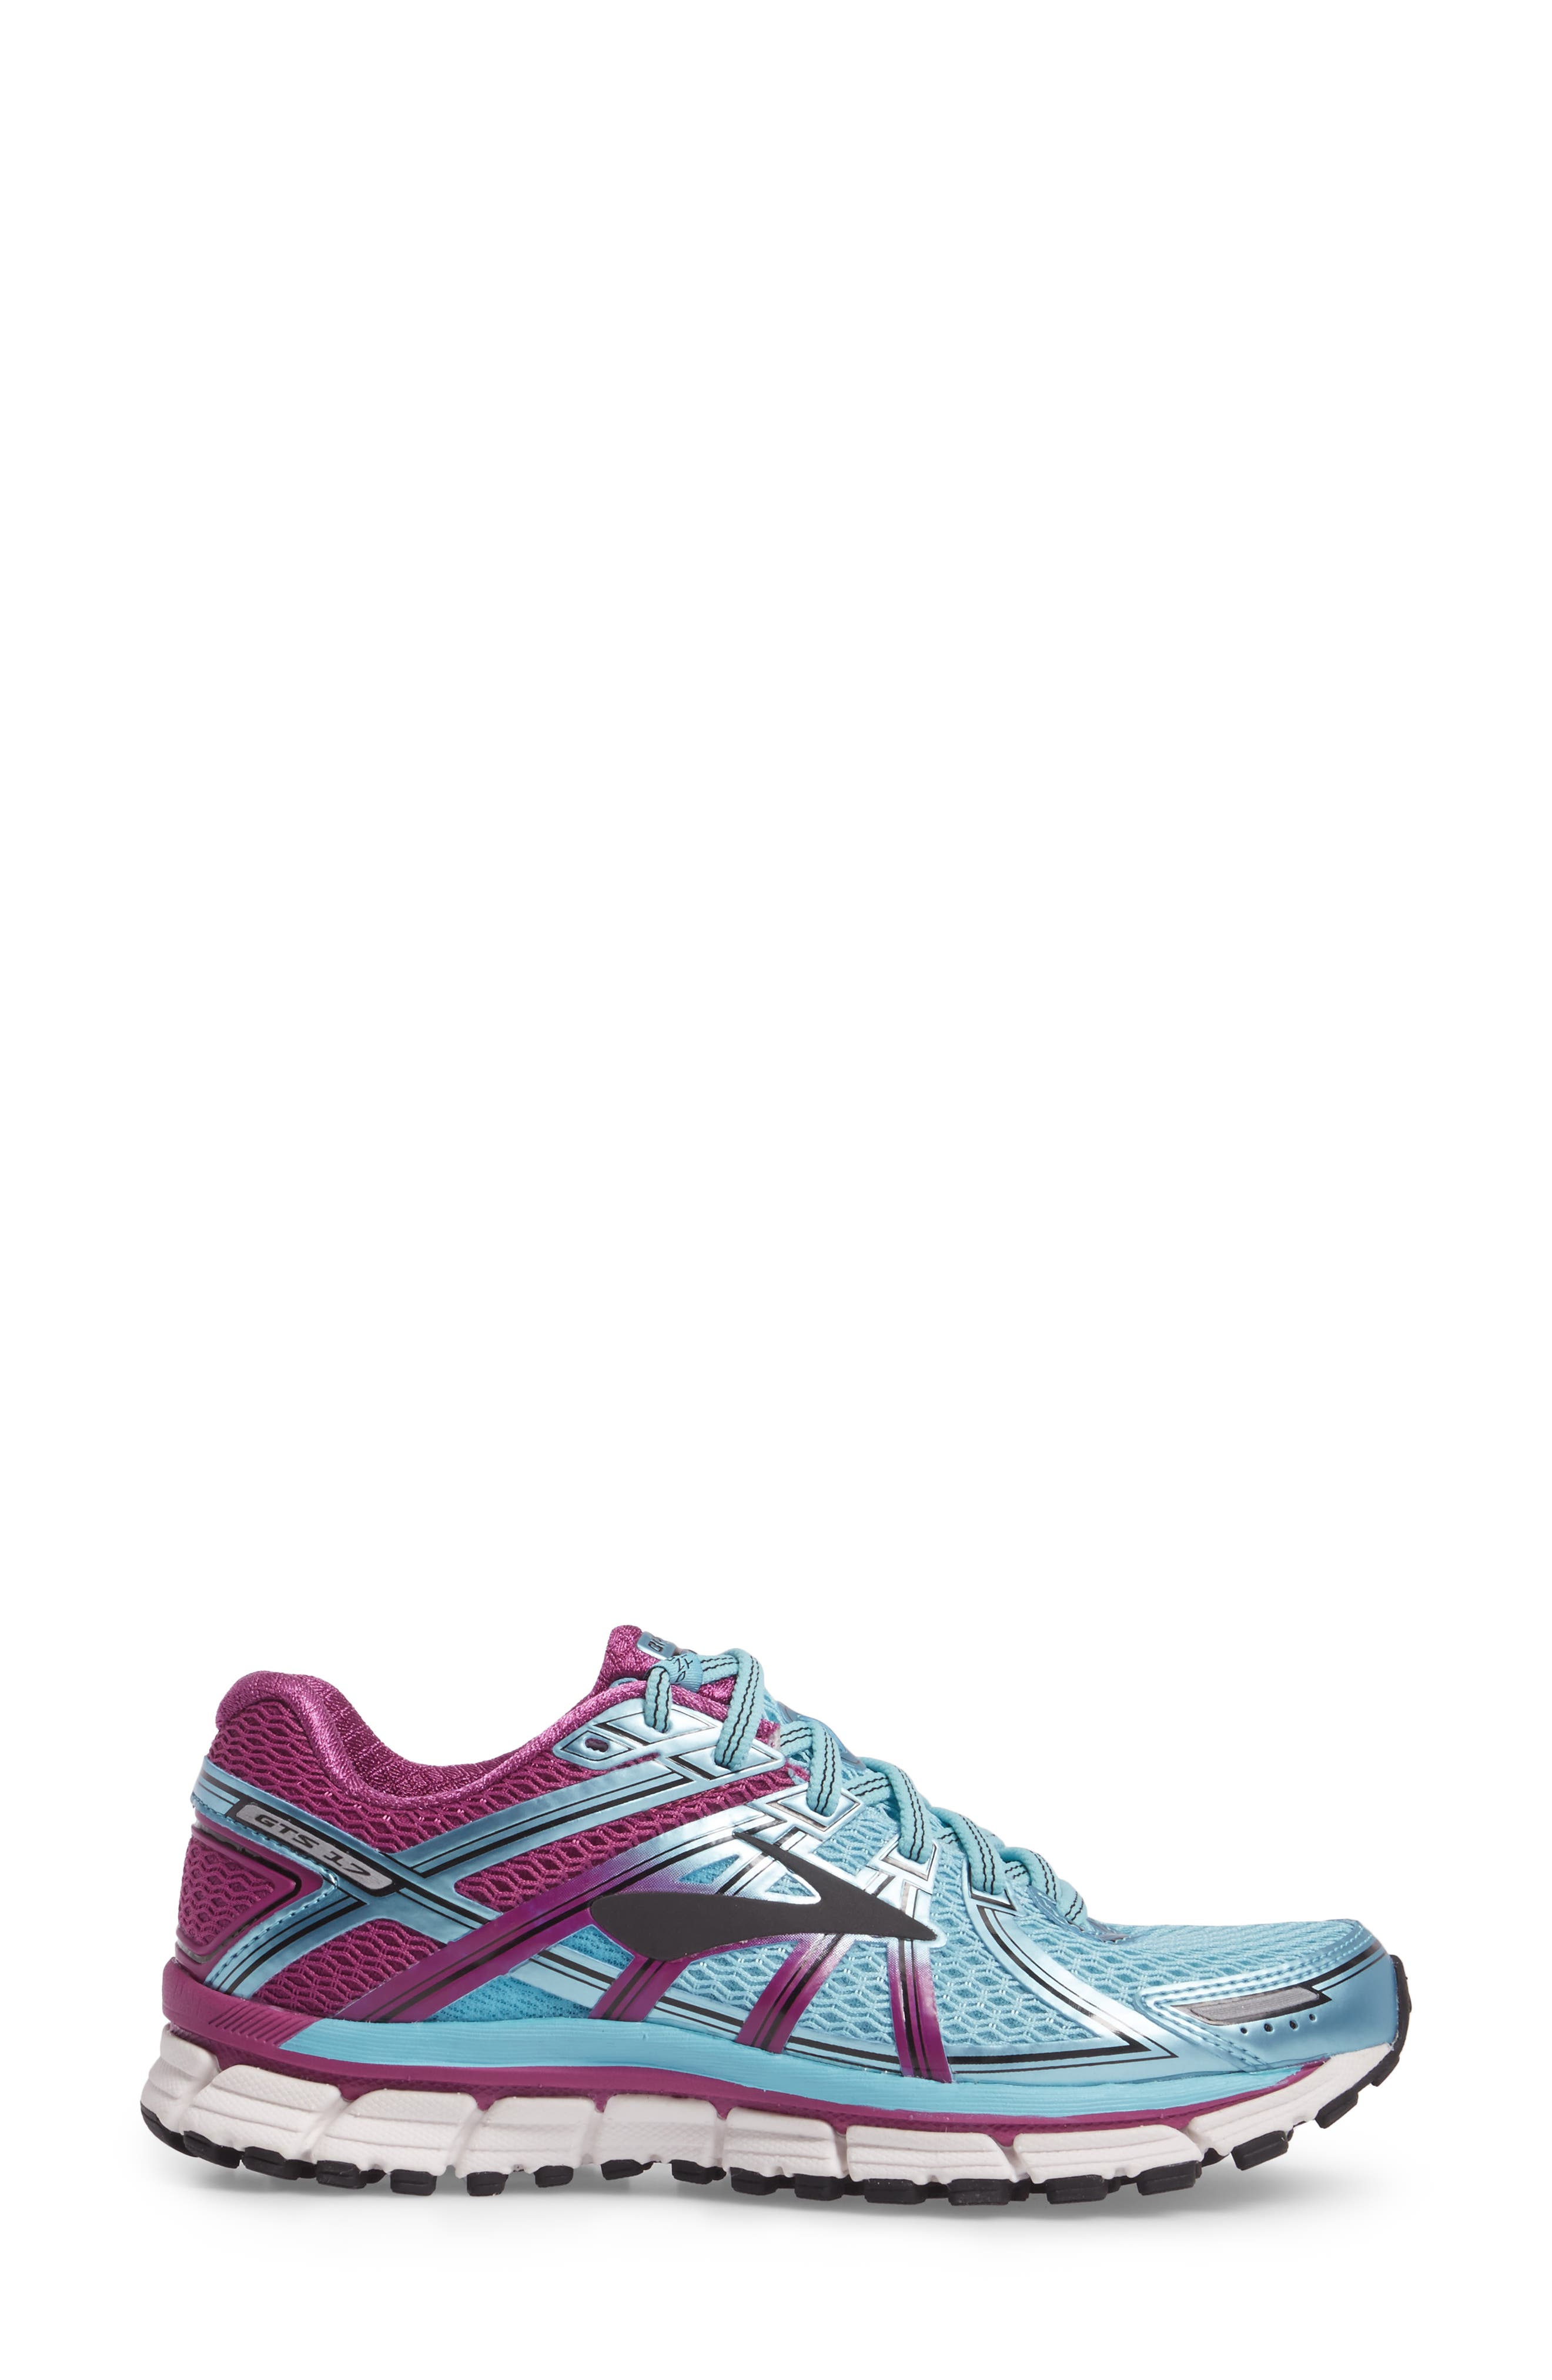 Alternate Image 3  - Brooks Adrenaline GTS 17 Running Shoe (Women)